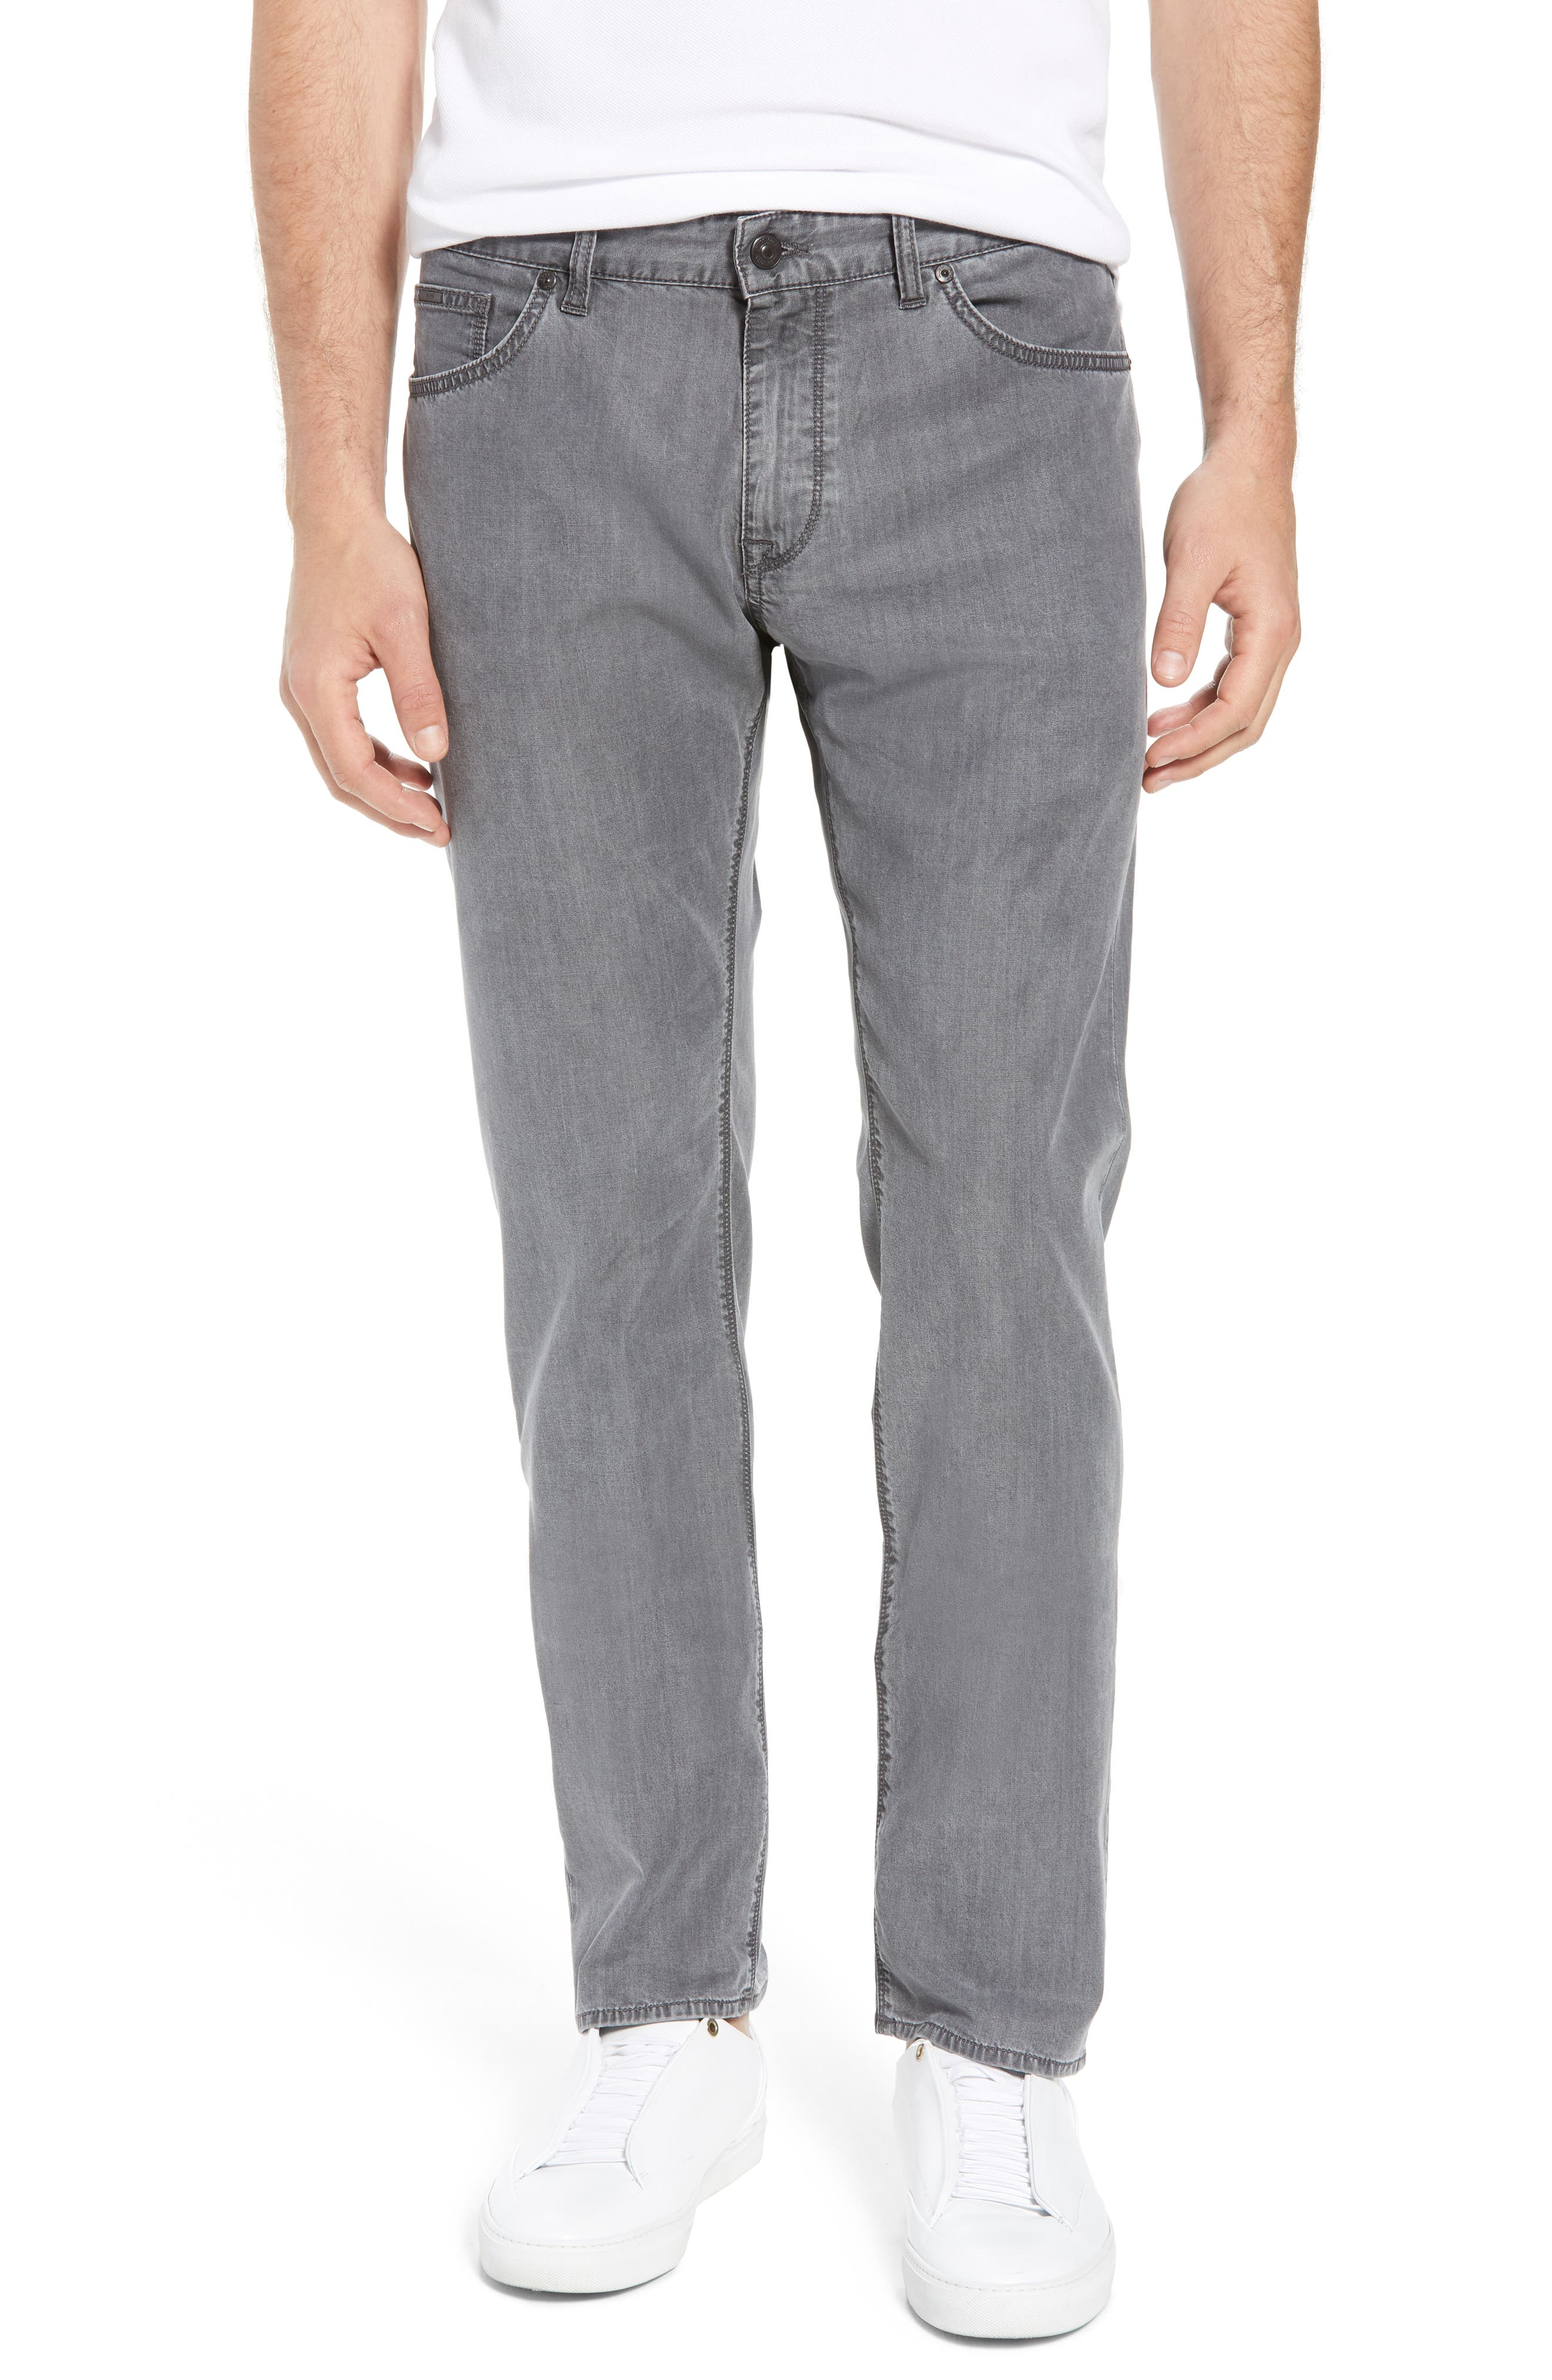 Maine Classic Fit Jeans,                         Main,                         color, GREY